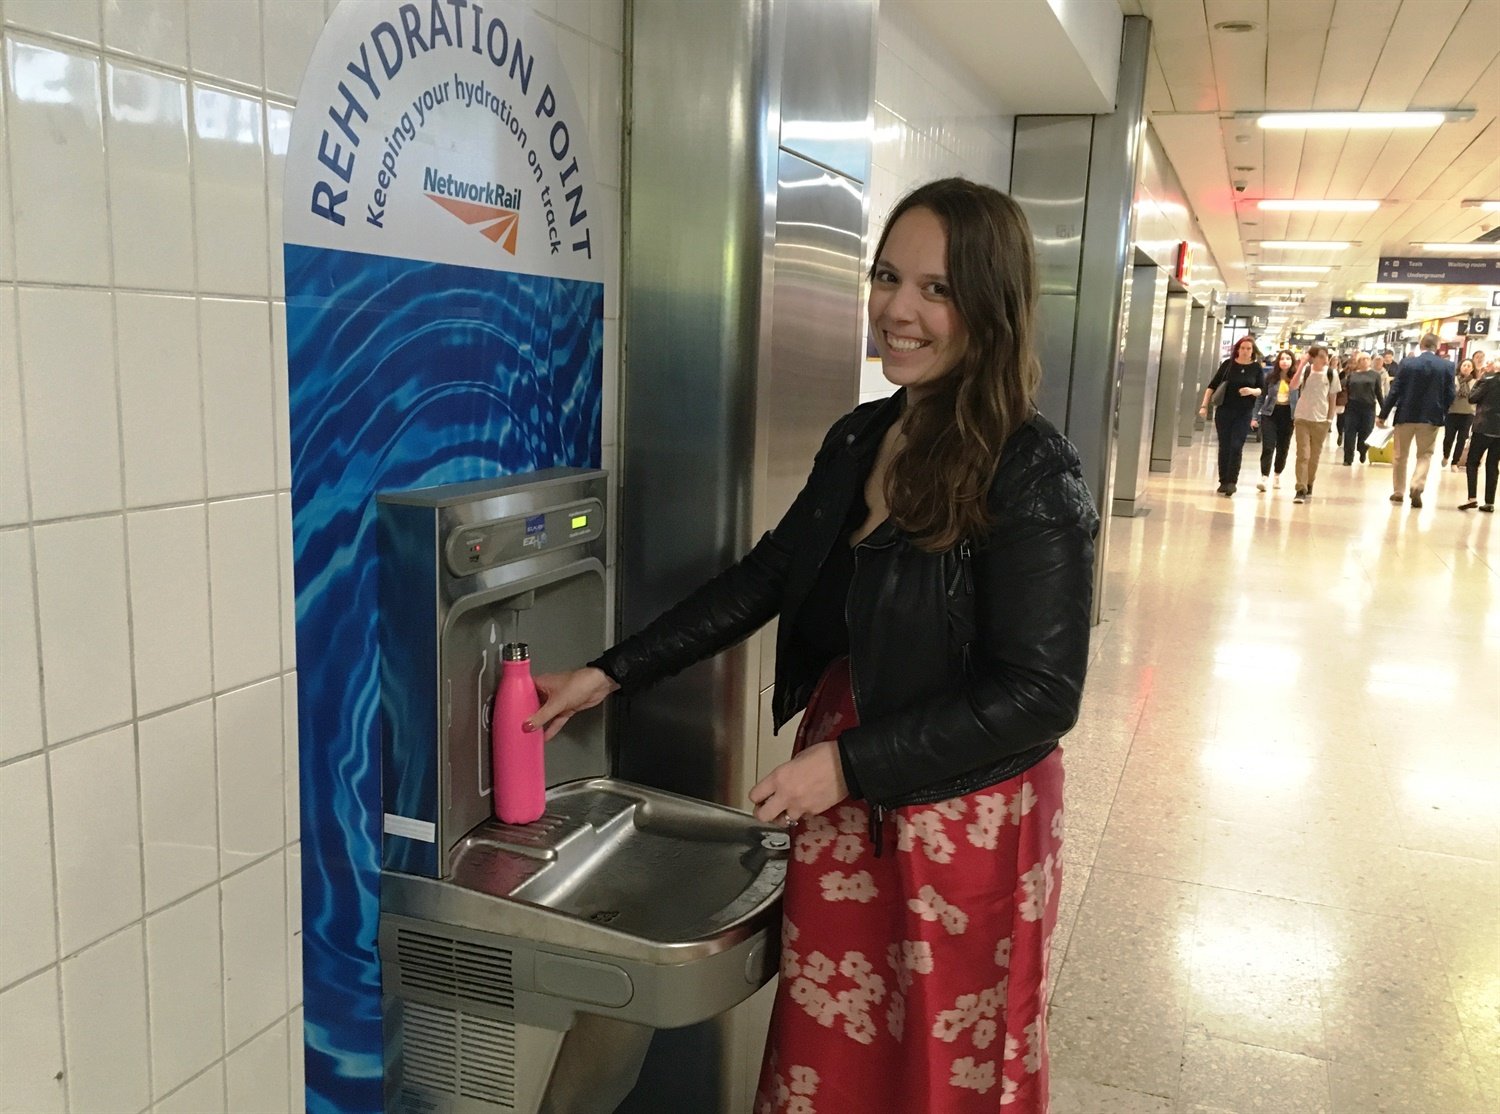 Equivalent of three million plastic bottles saved by Network Rail initiative